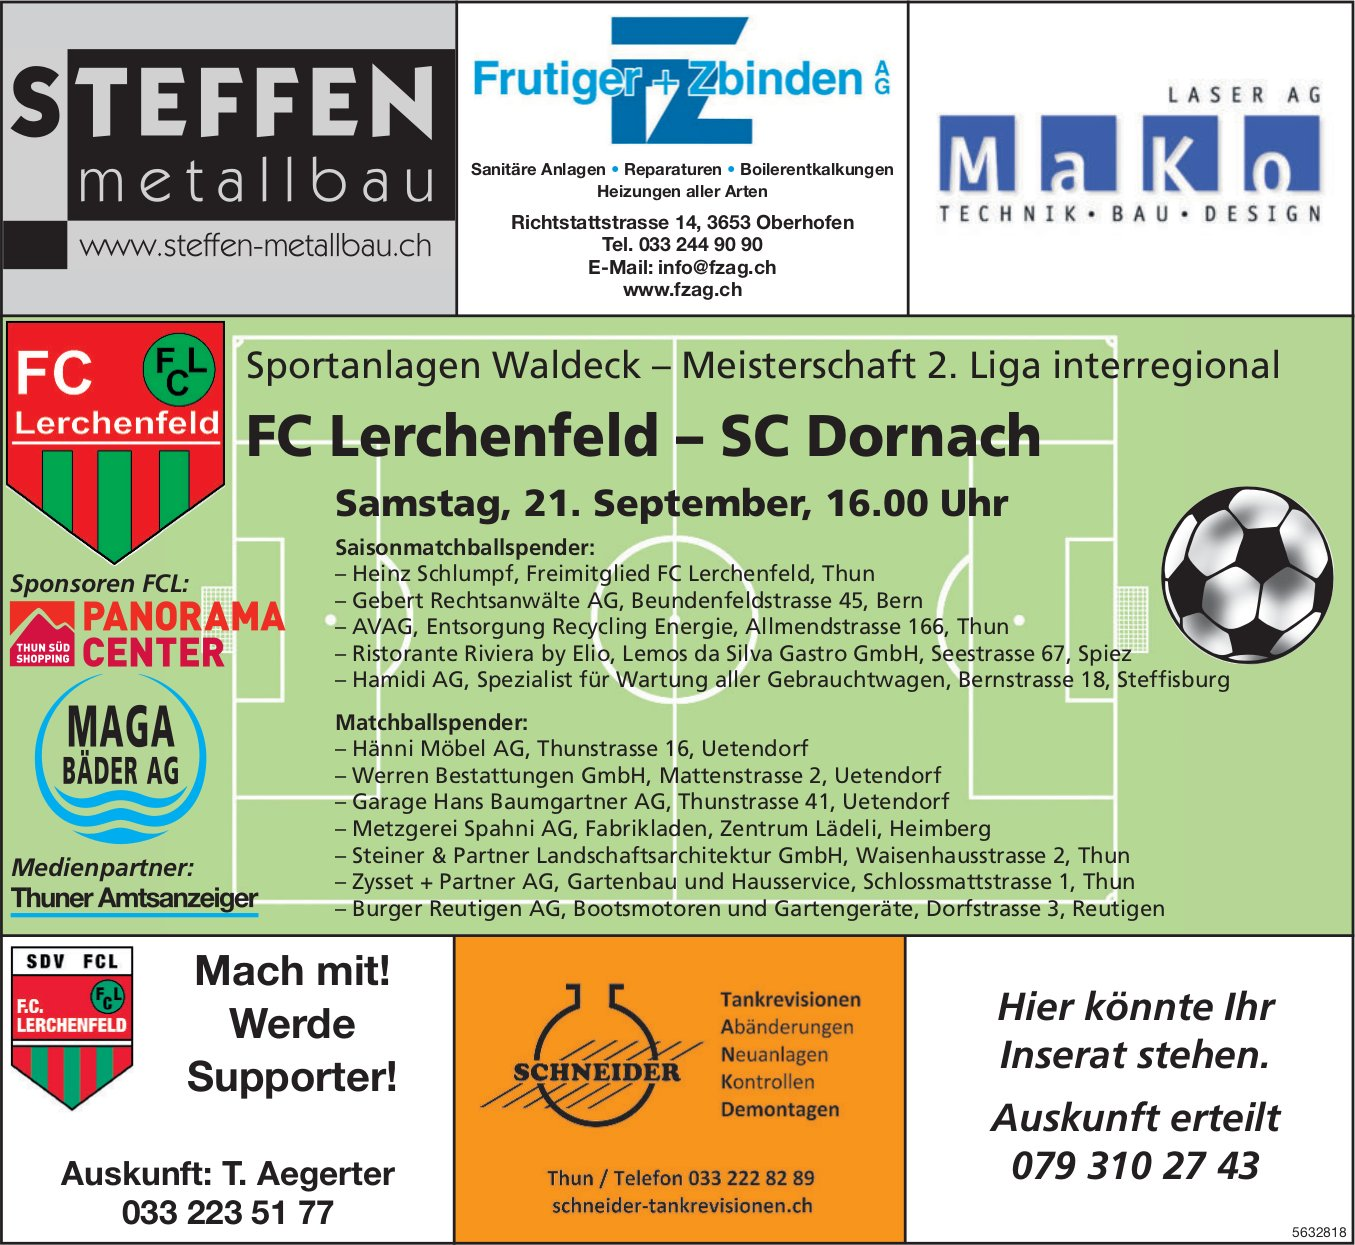 Meisterschaft 2. Liga interregional - FC Lerchenfeld vs. SC Dornach am 21. September